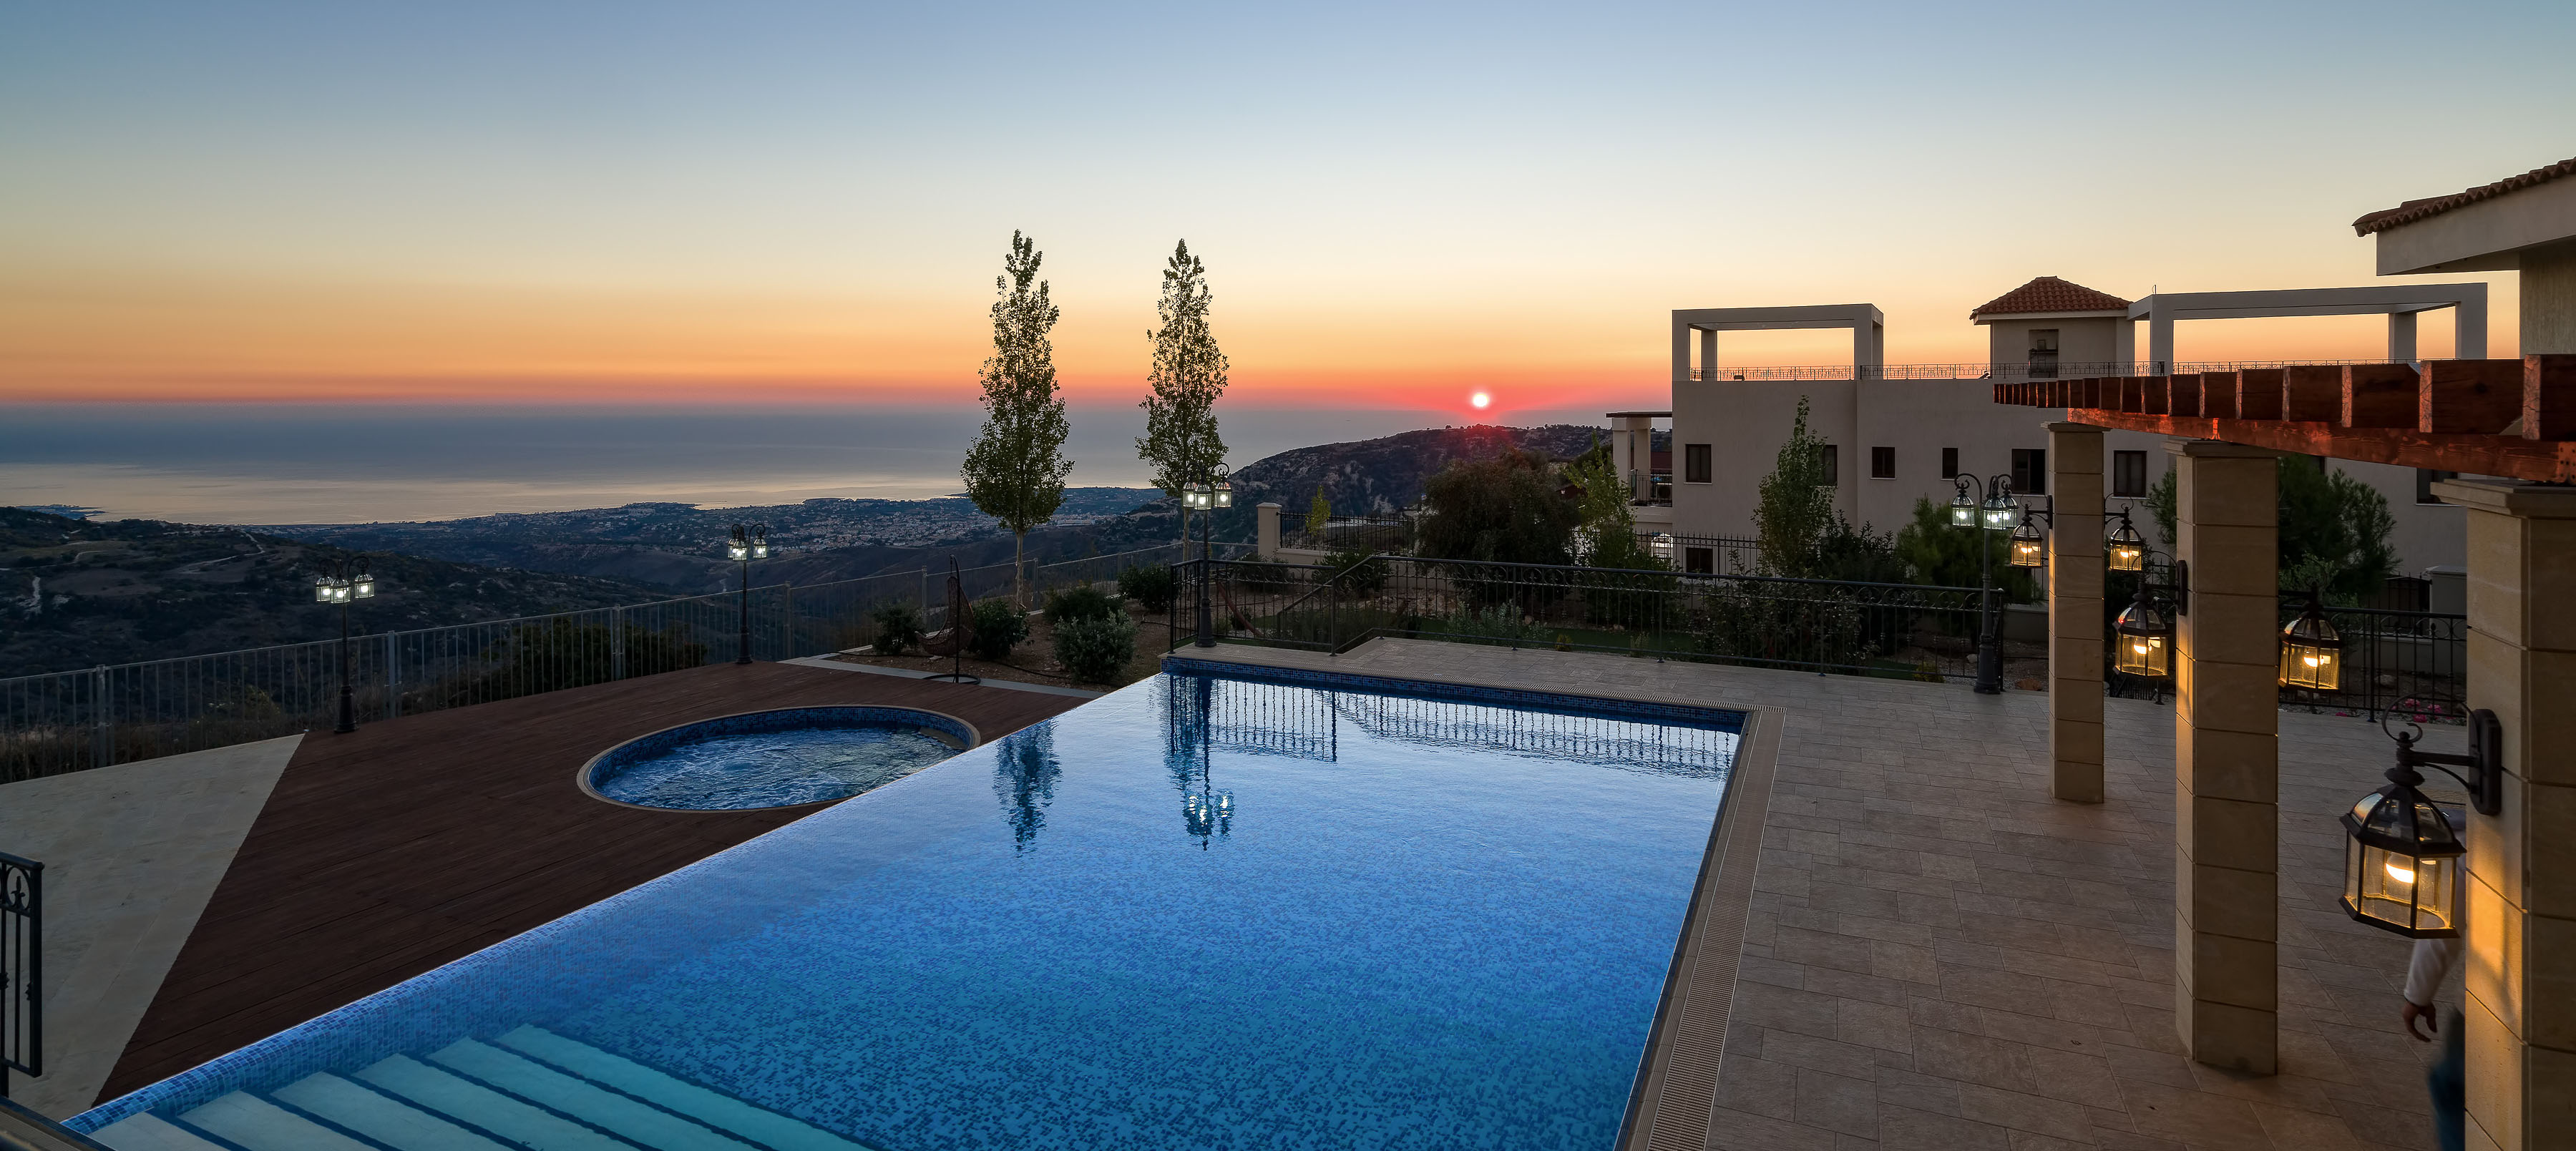 Cyprus Holiday Villa 492015